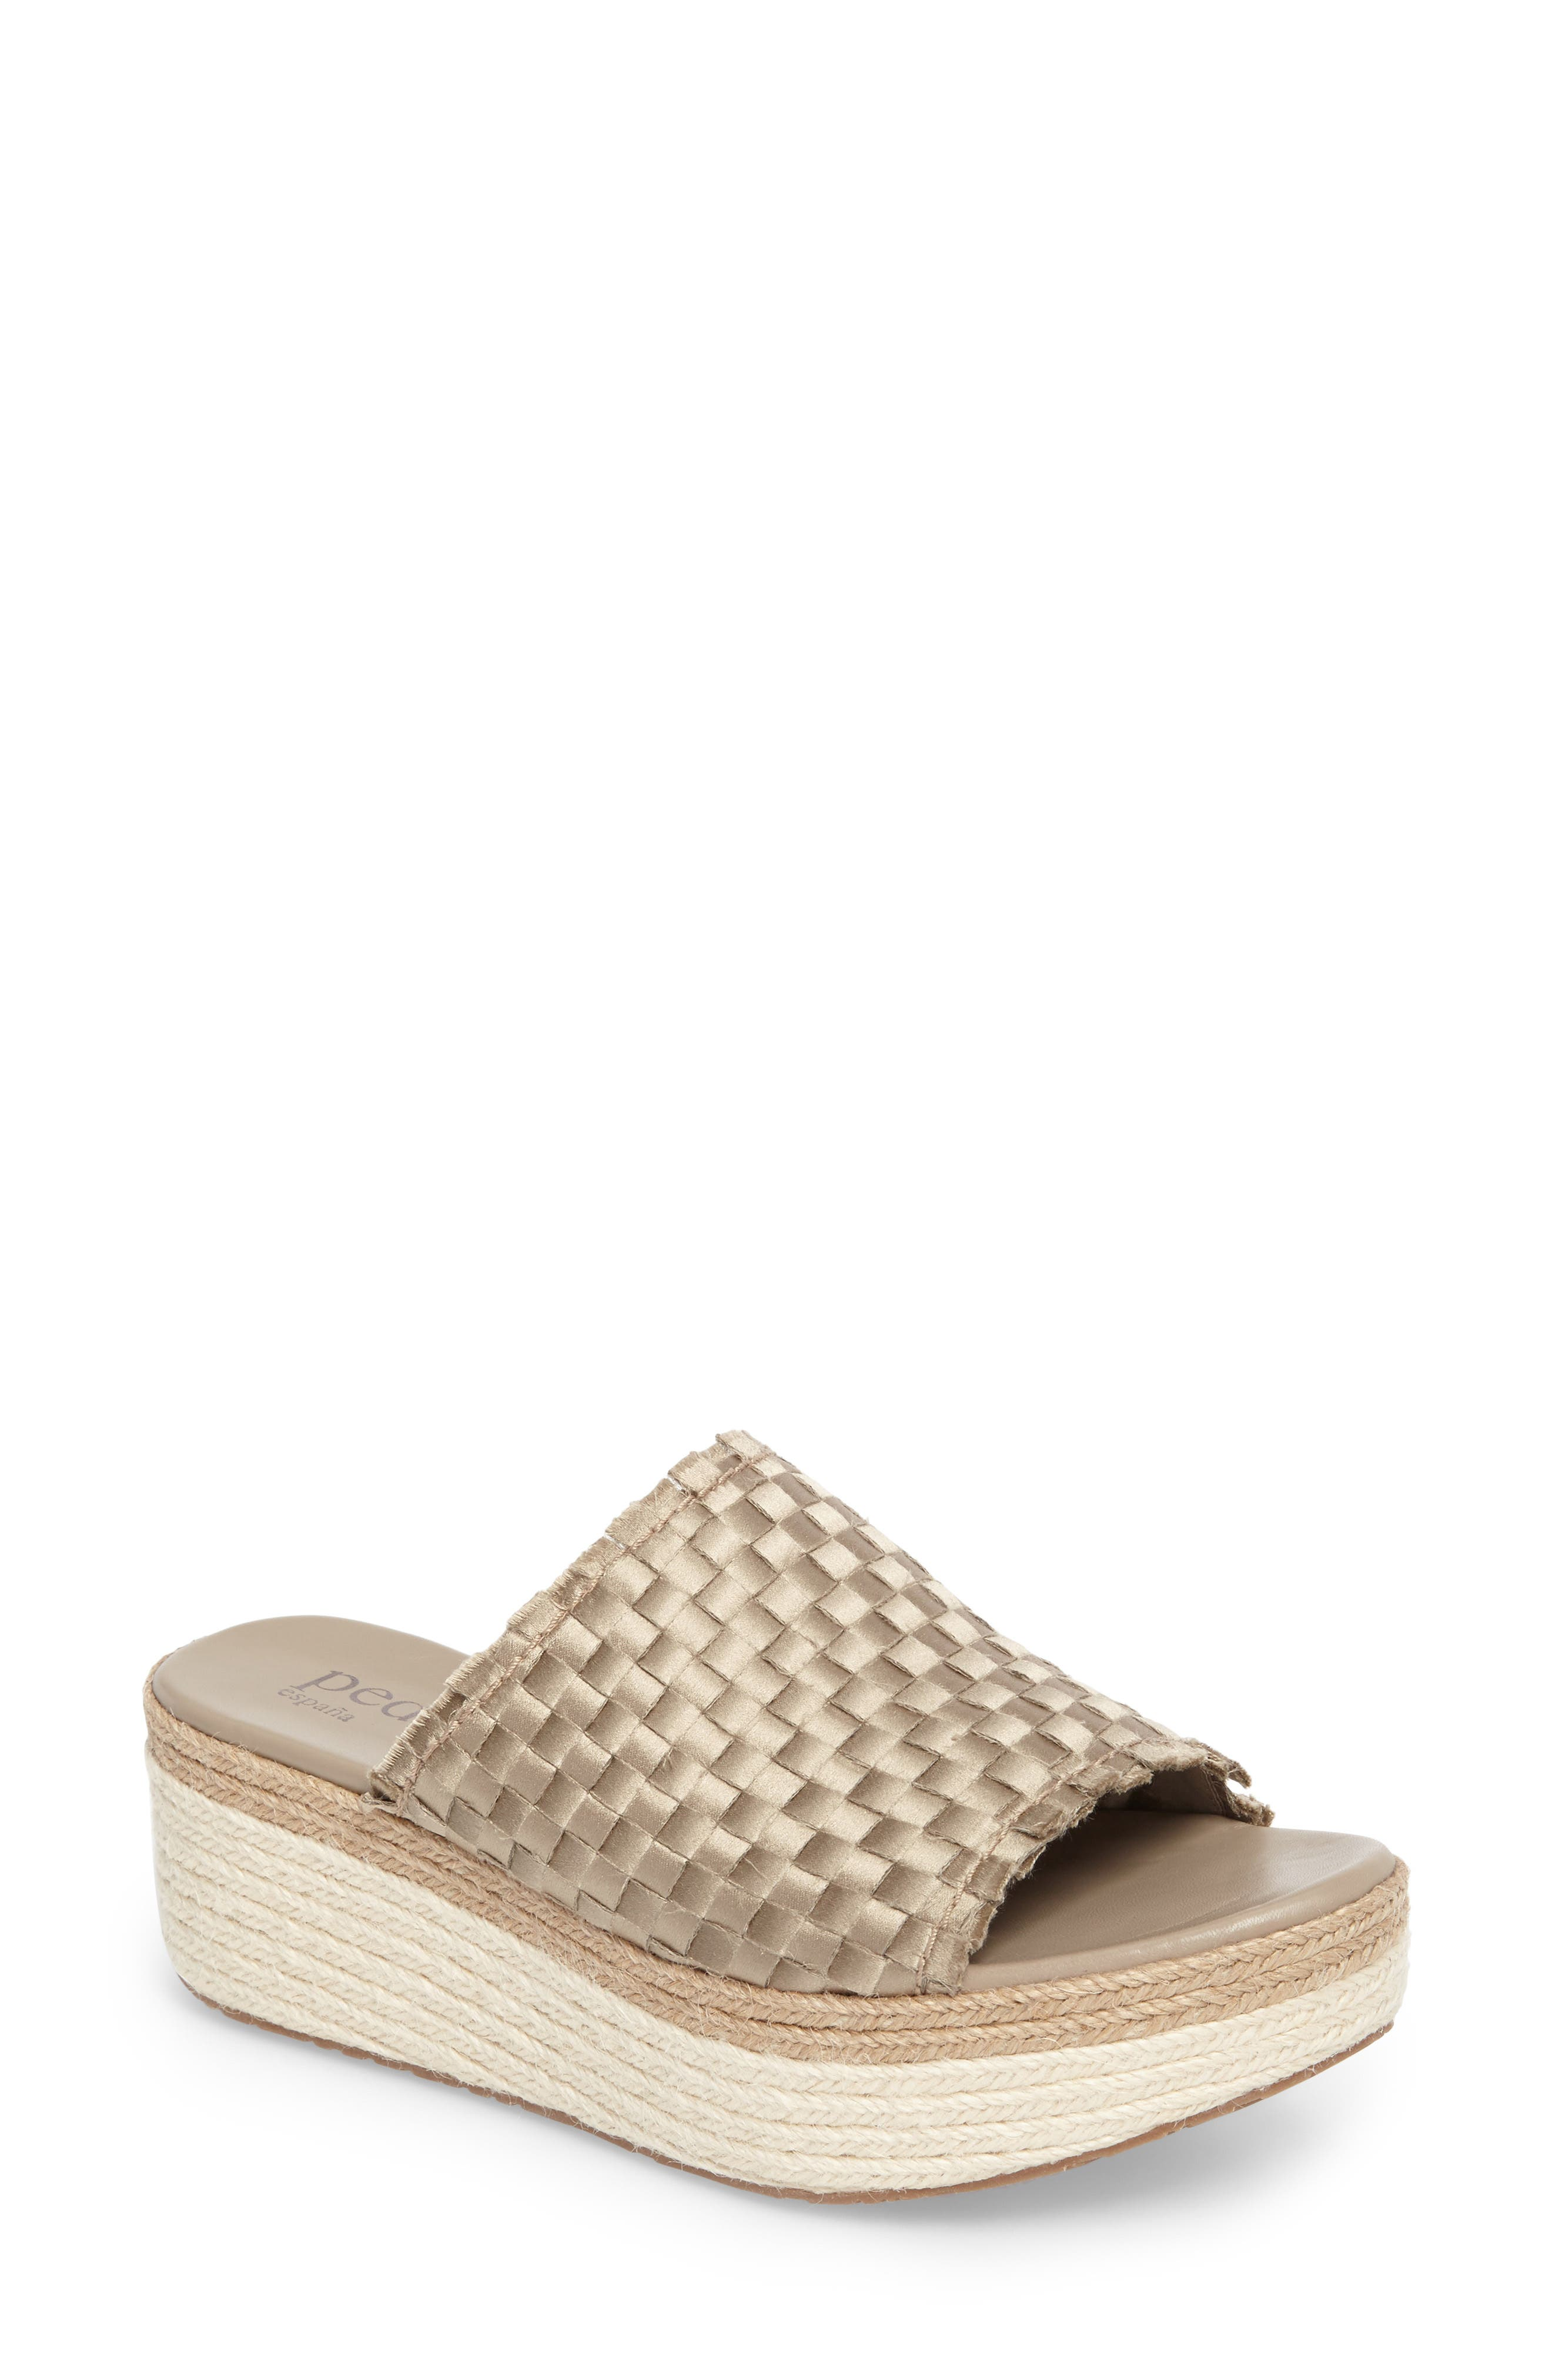 Noema Woven Espadrille Mule,                         Main,                         color, Twill Satin